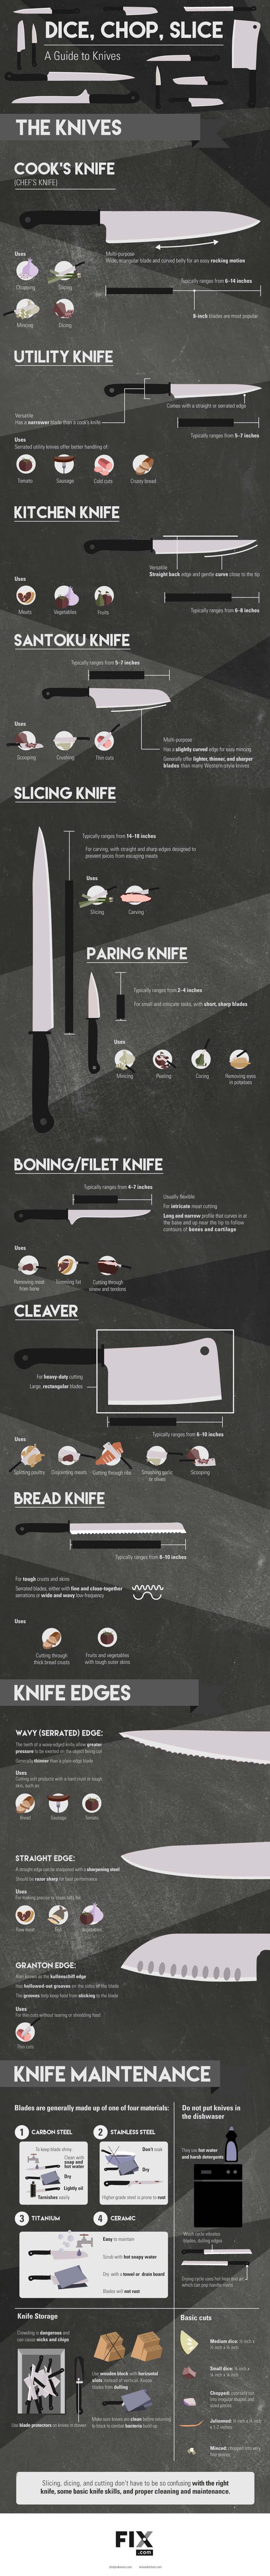 Ultimate Kitchen Knife Guide - Which Kitchen Knife Should I Use - www.platingpixels.com